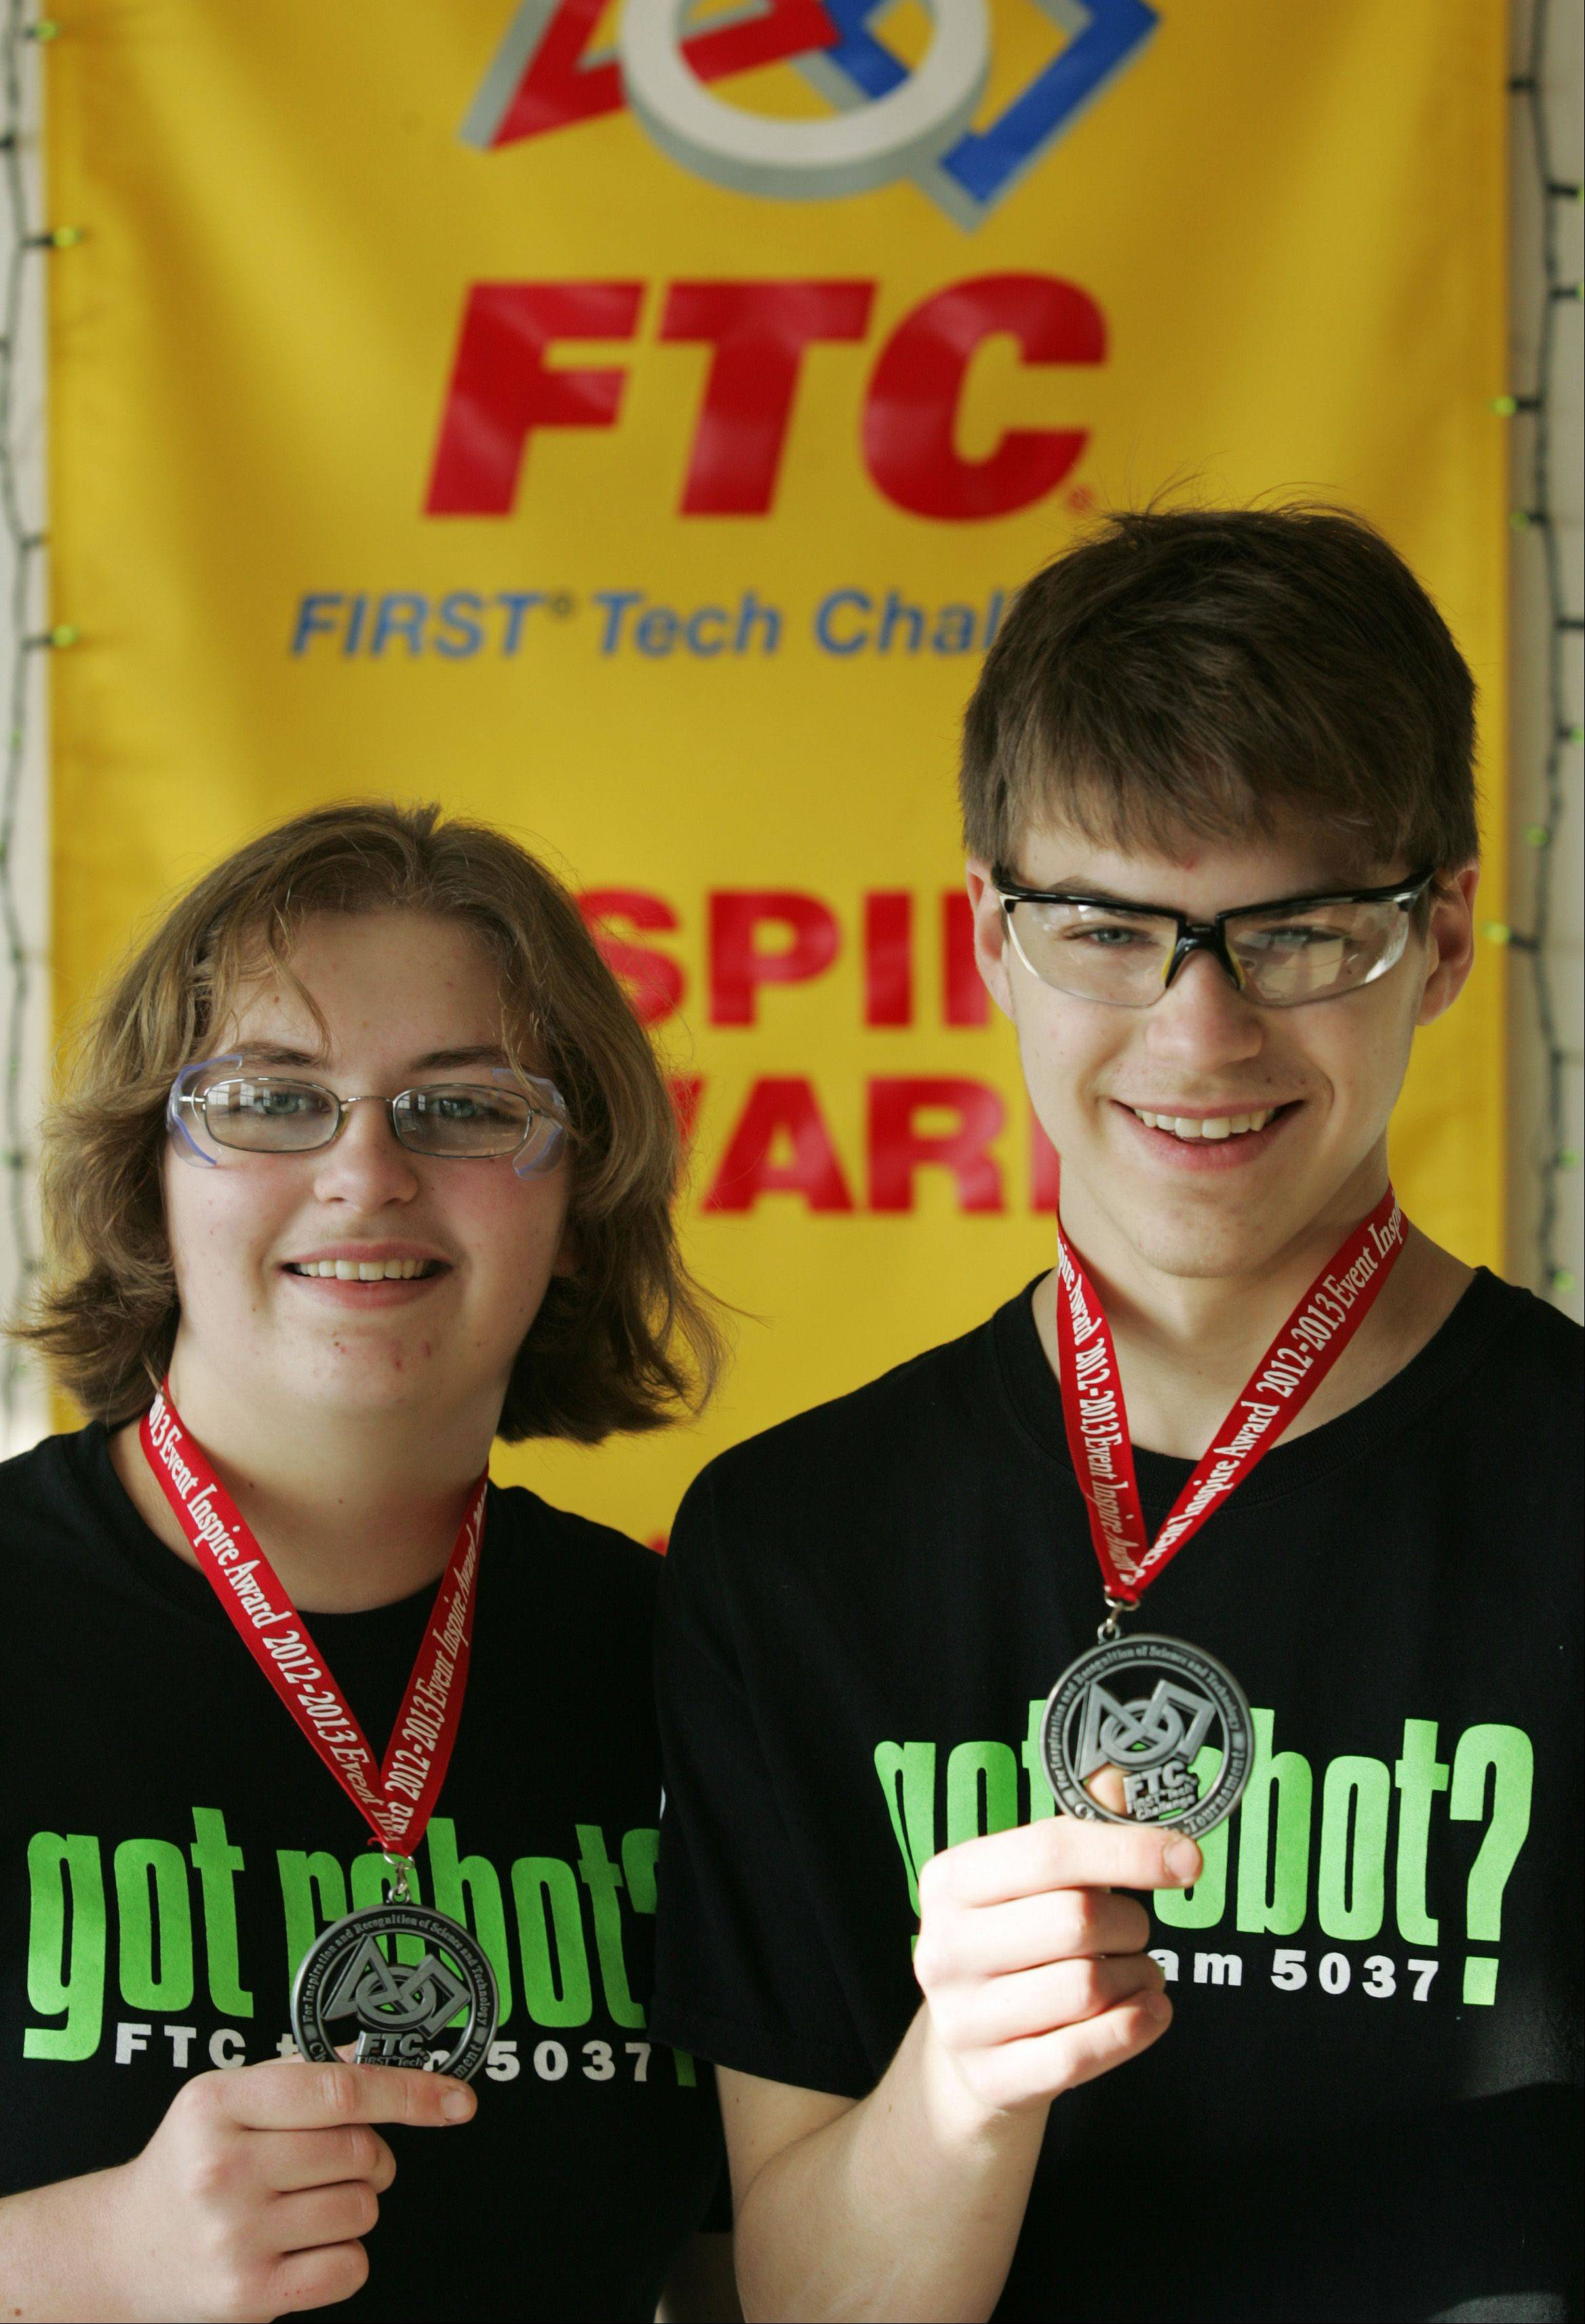 Kristen and Matthew McKellar compete with other high school students on the robotics team, got robot?